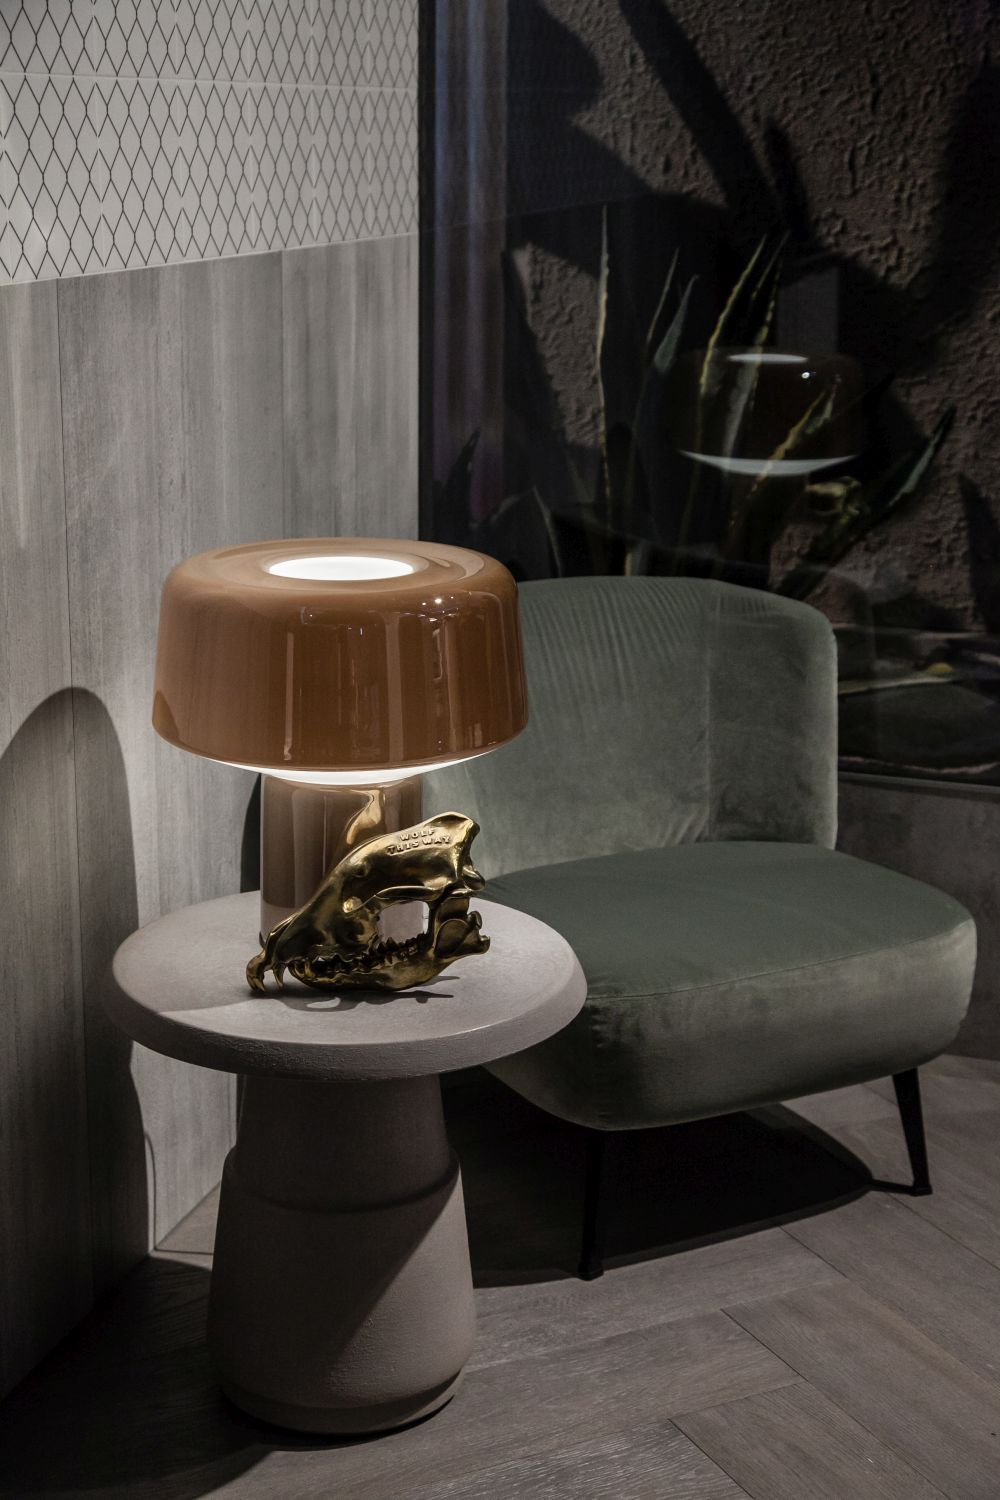 If you're using a table lamp, make sure it's positioned right and that the light falls at a comfortable angle